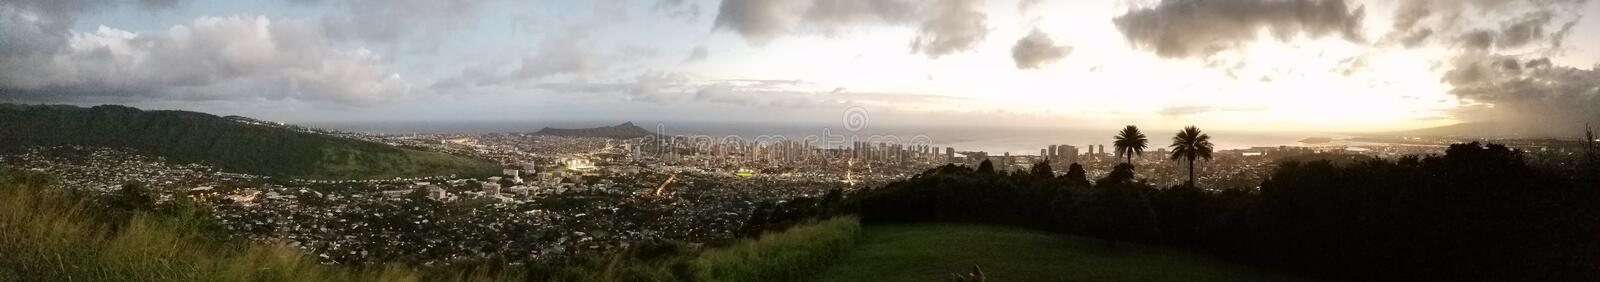 Honolulu - panorama do por do sol fotografia de stock royalty free